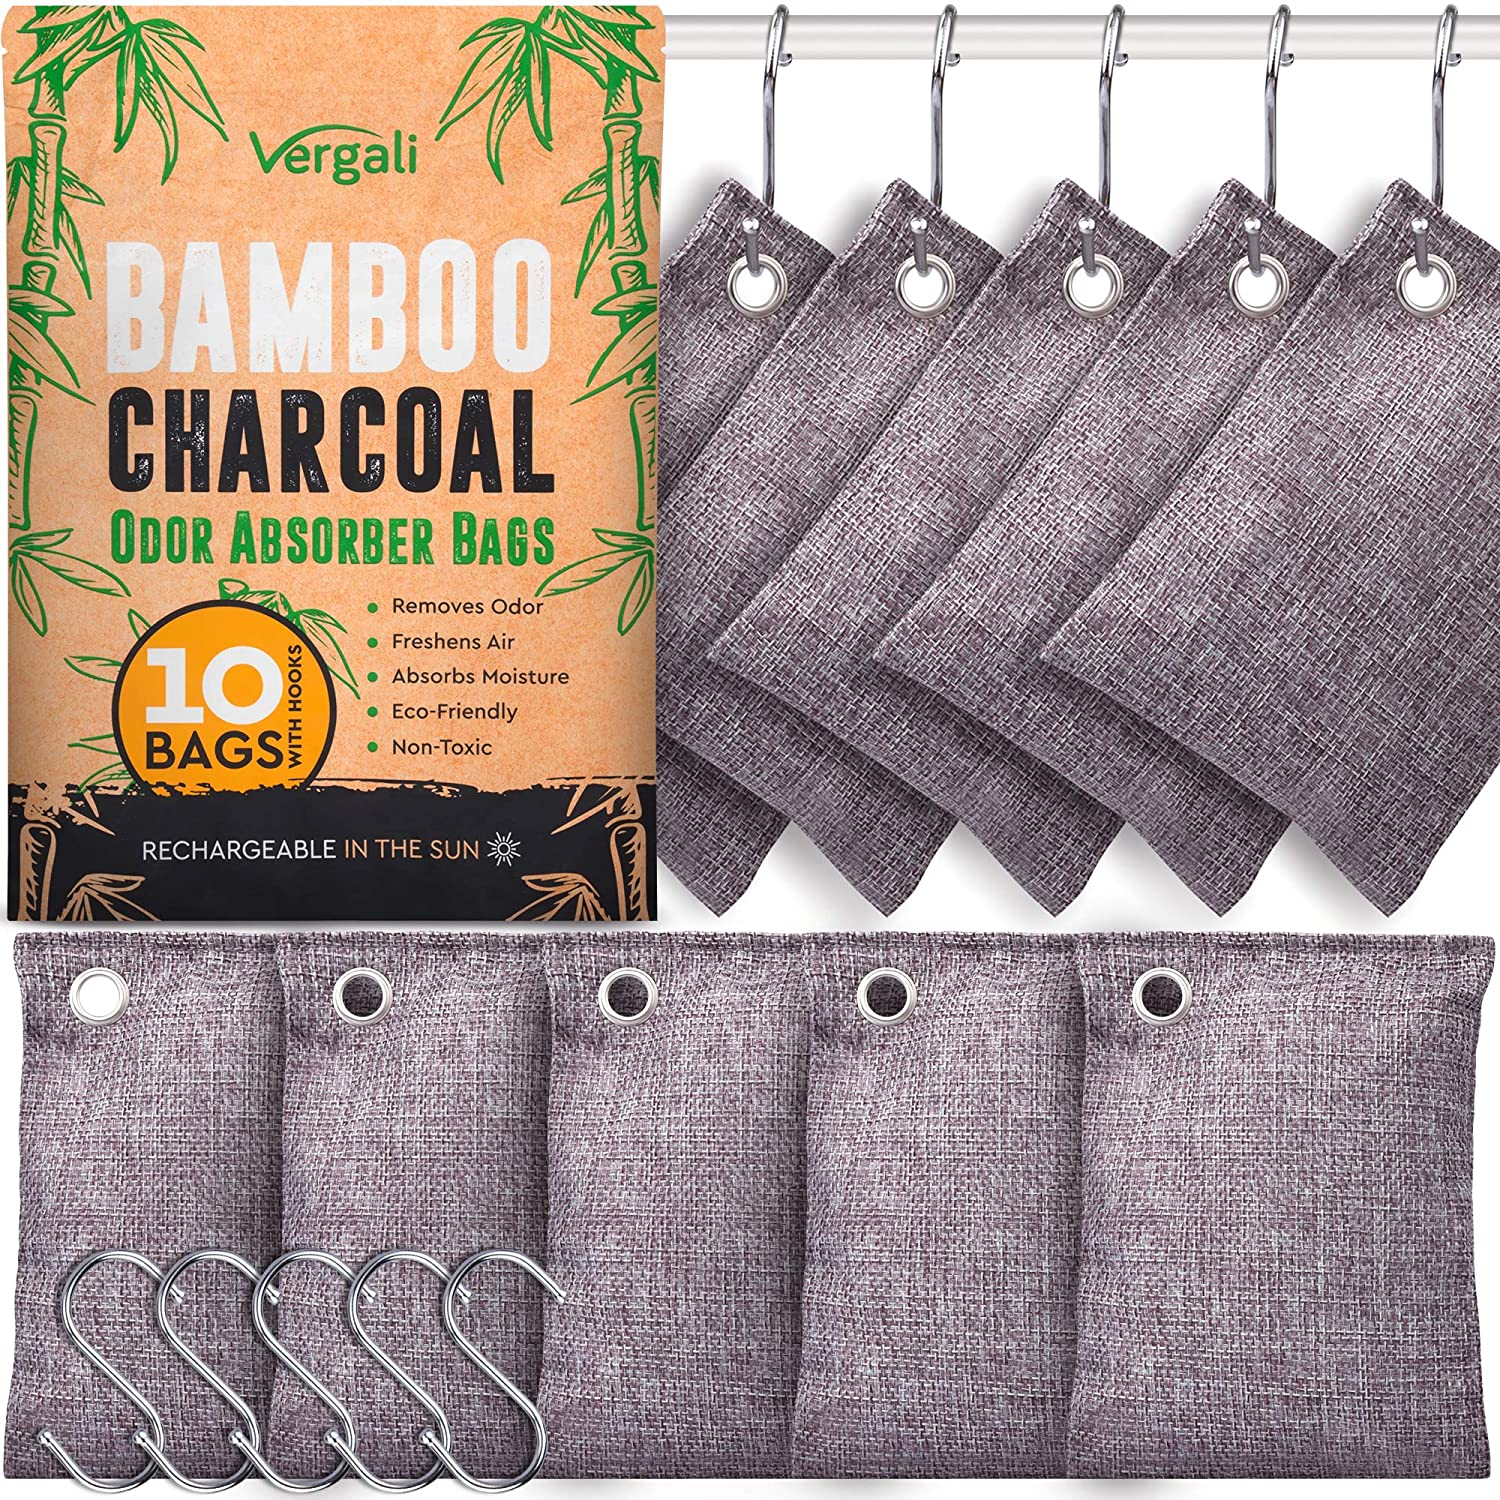 Nature Fresh Bamboo Charcoal Air Purifying Bags 10 x 100g Pack. Activated Natural Home Odor Absorber, Deodorizer and Moisture Eliminator. Purifier Bag for Closet, Shoe, Car, large Room. Pet Safe